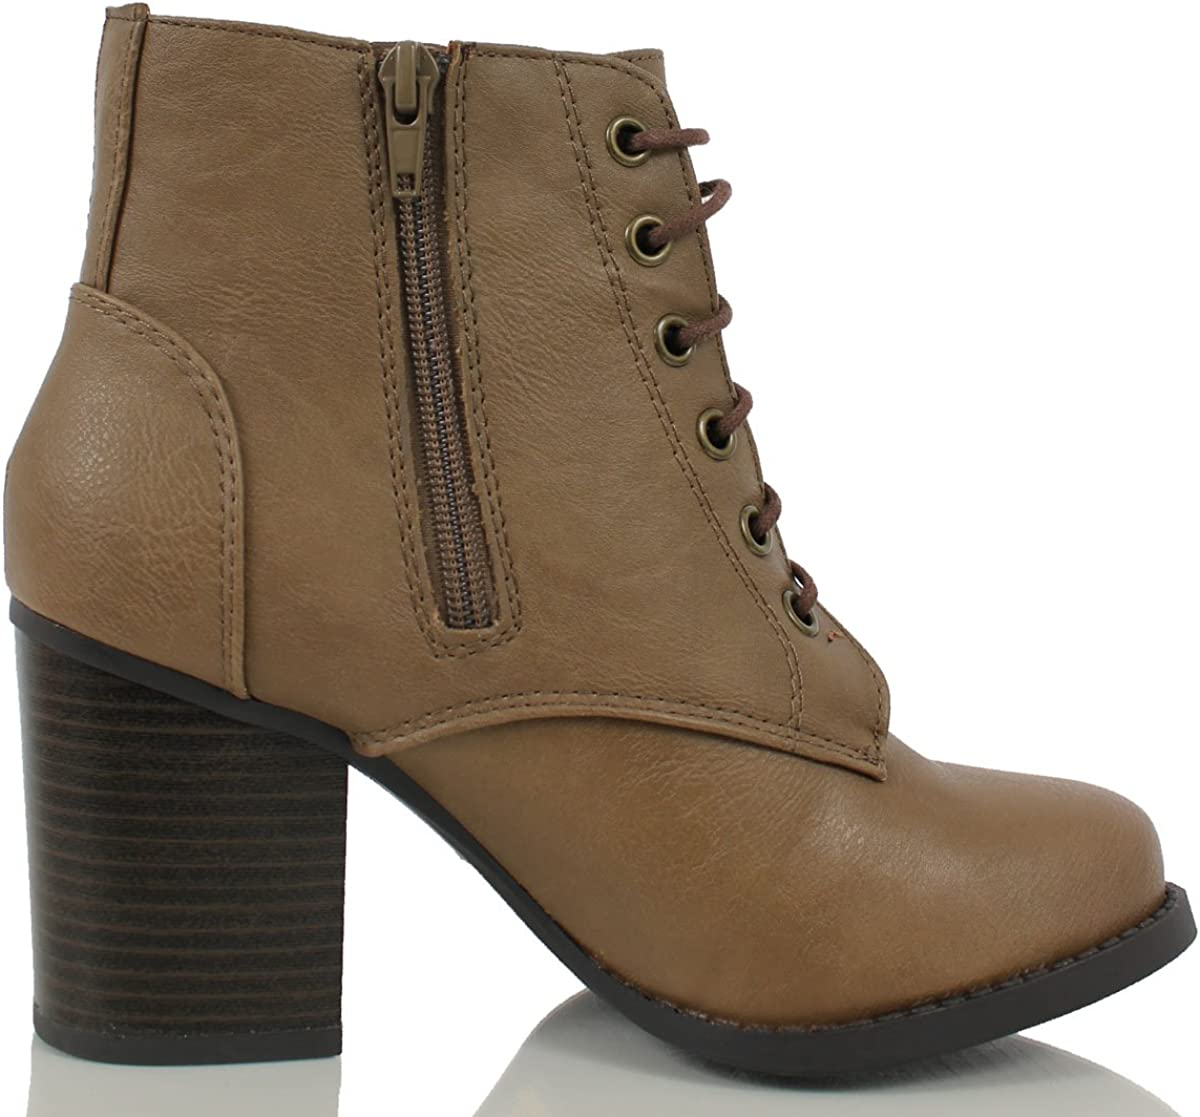 Soda Women/'s Lurk Taupe Faux Leather Lace Up Stacked Chunky Heel Ankle Booties